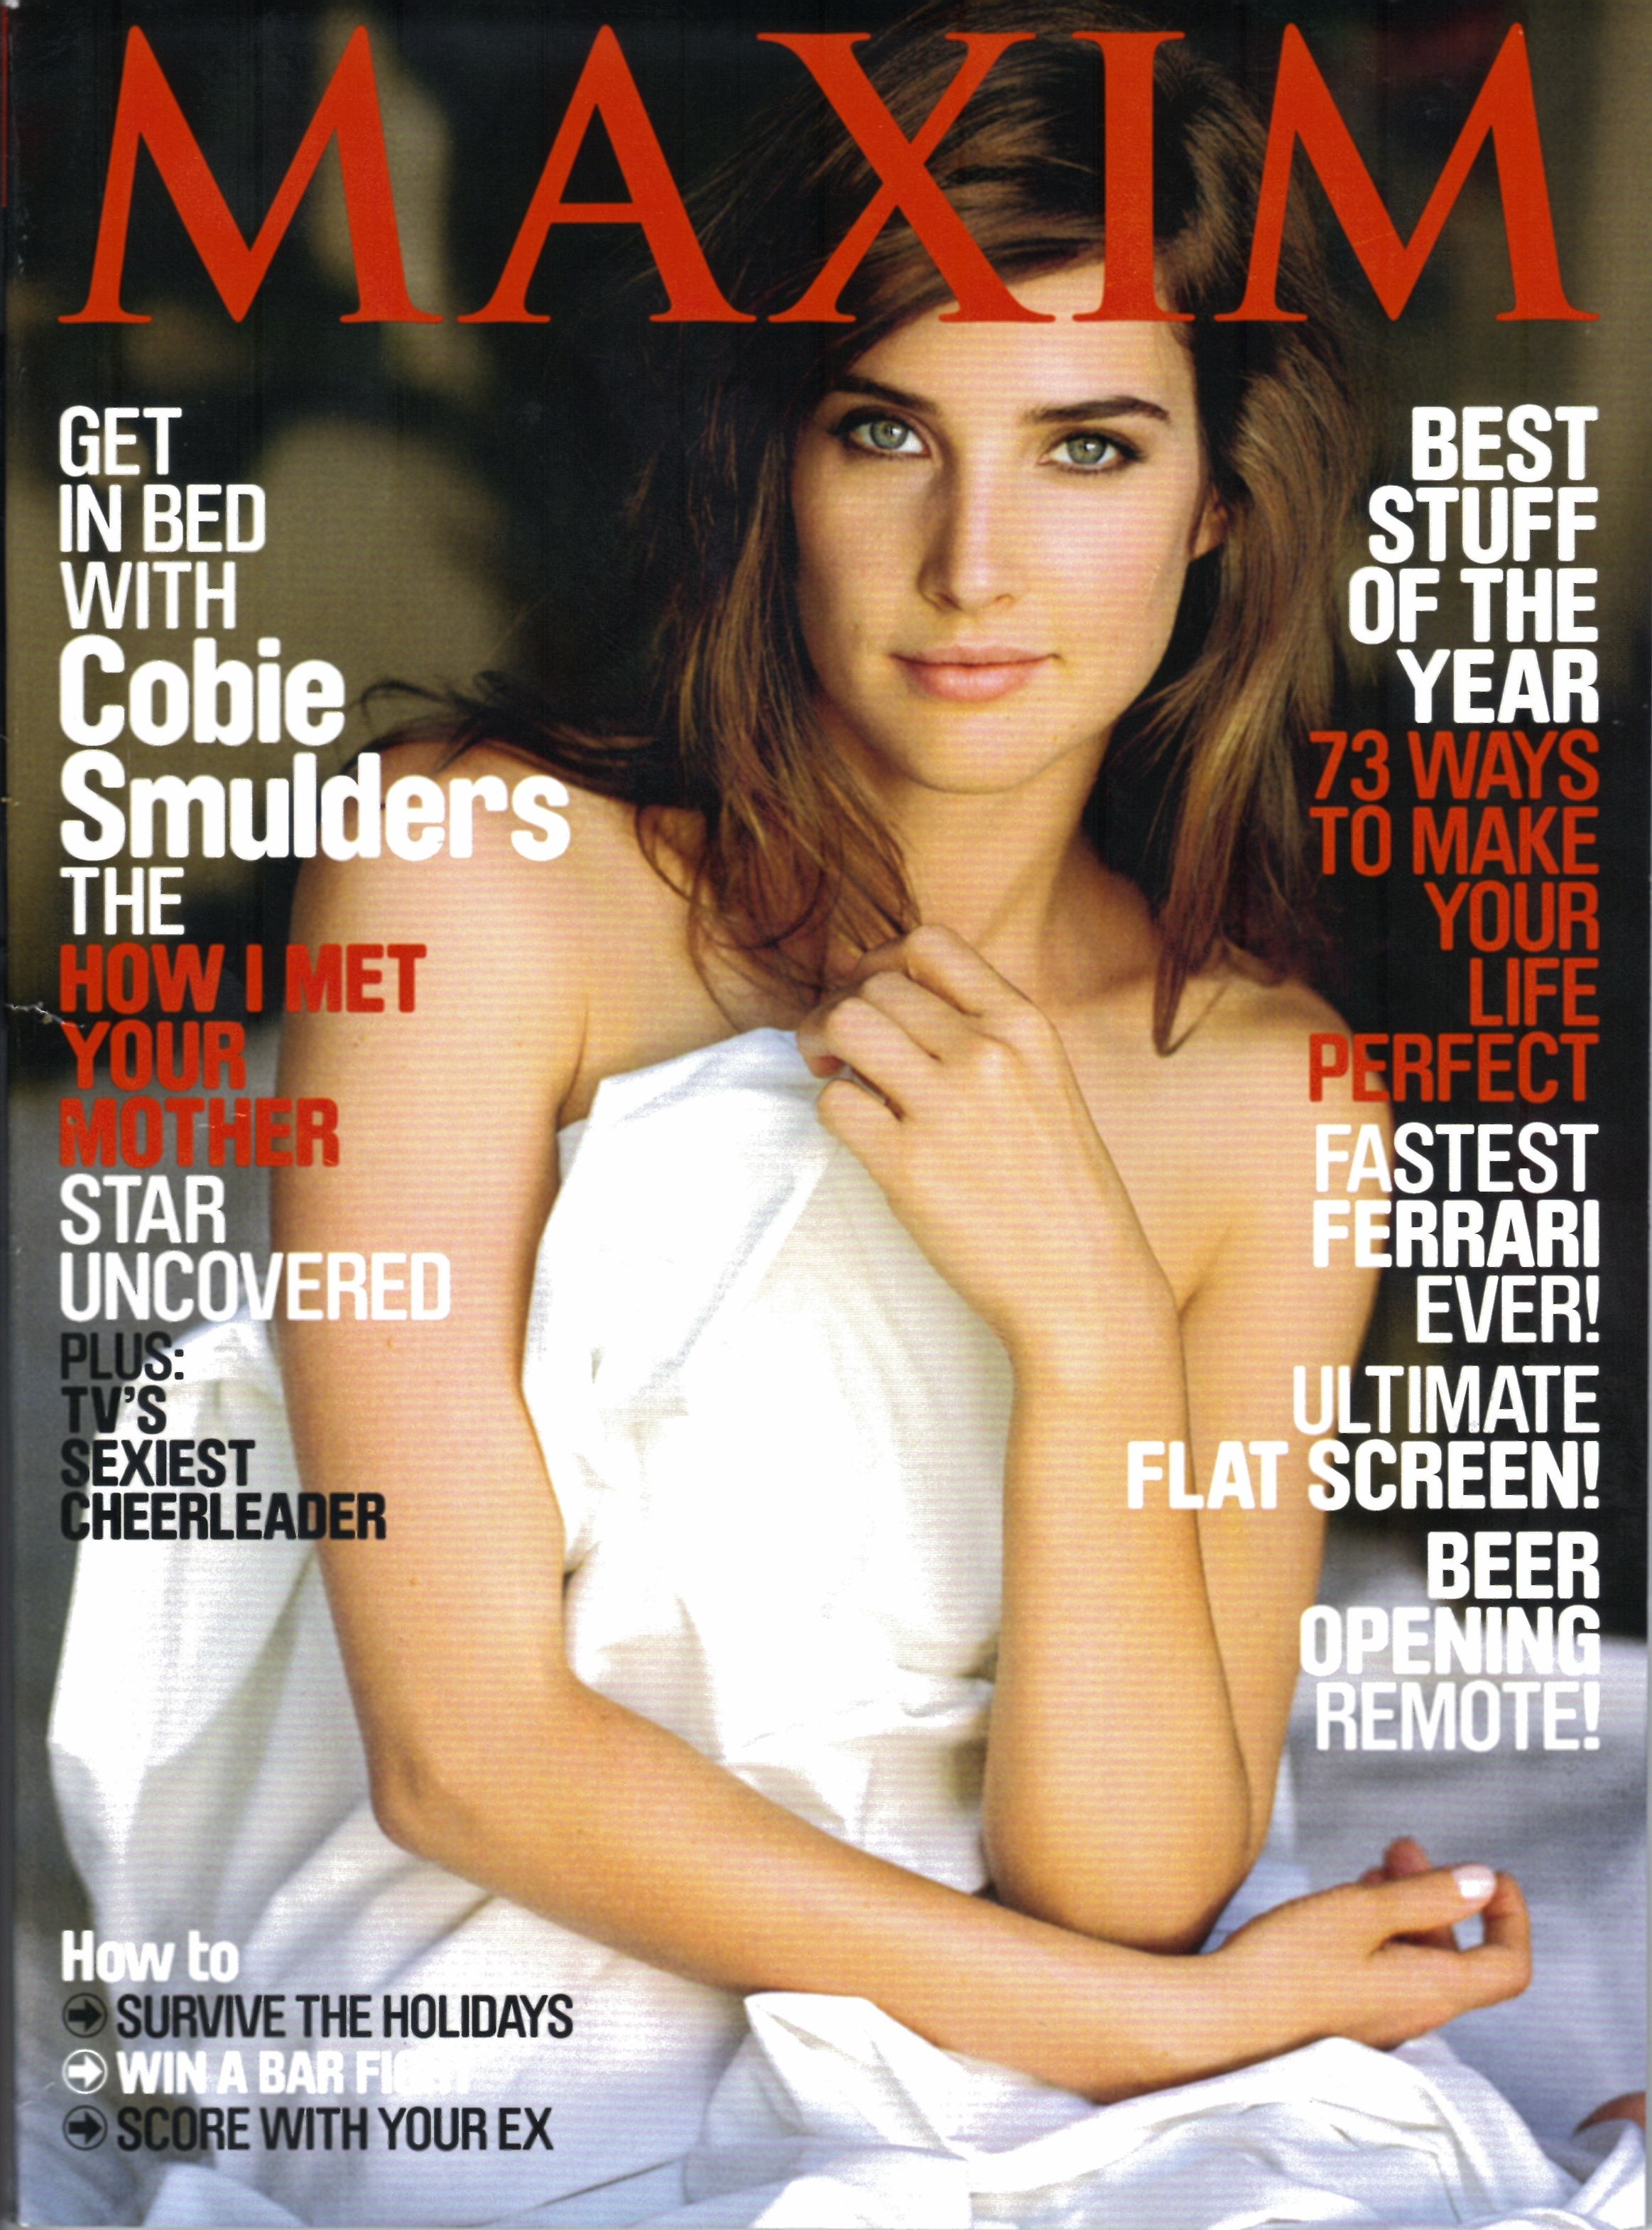 cobie smulders Maxim Magazine HD Wallpaper